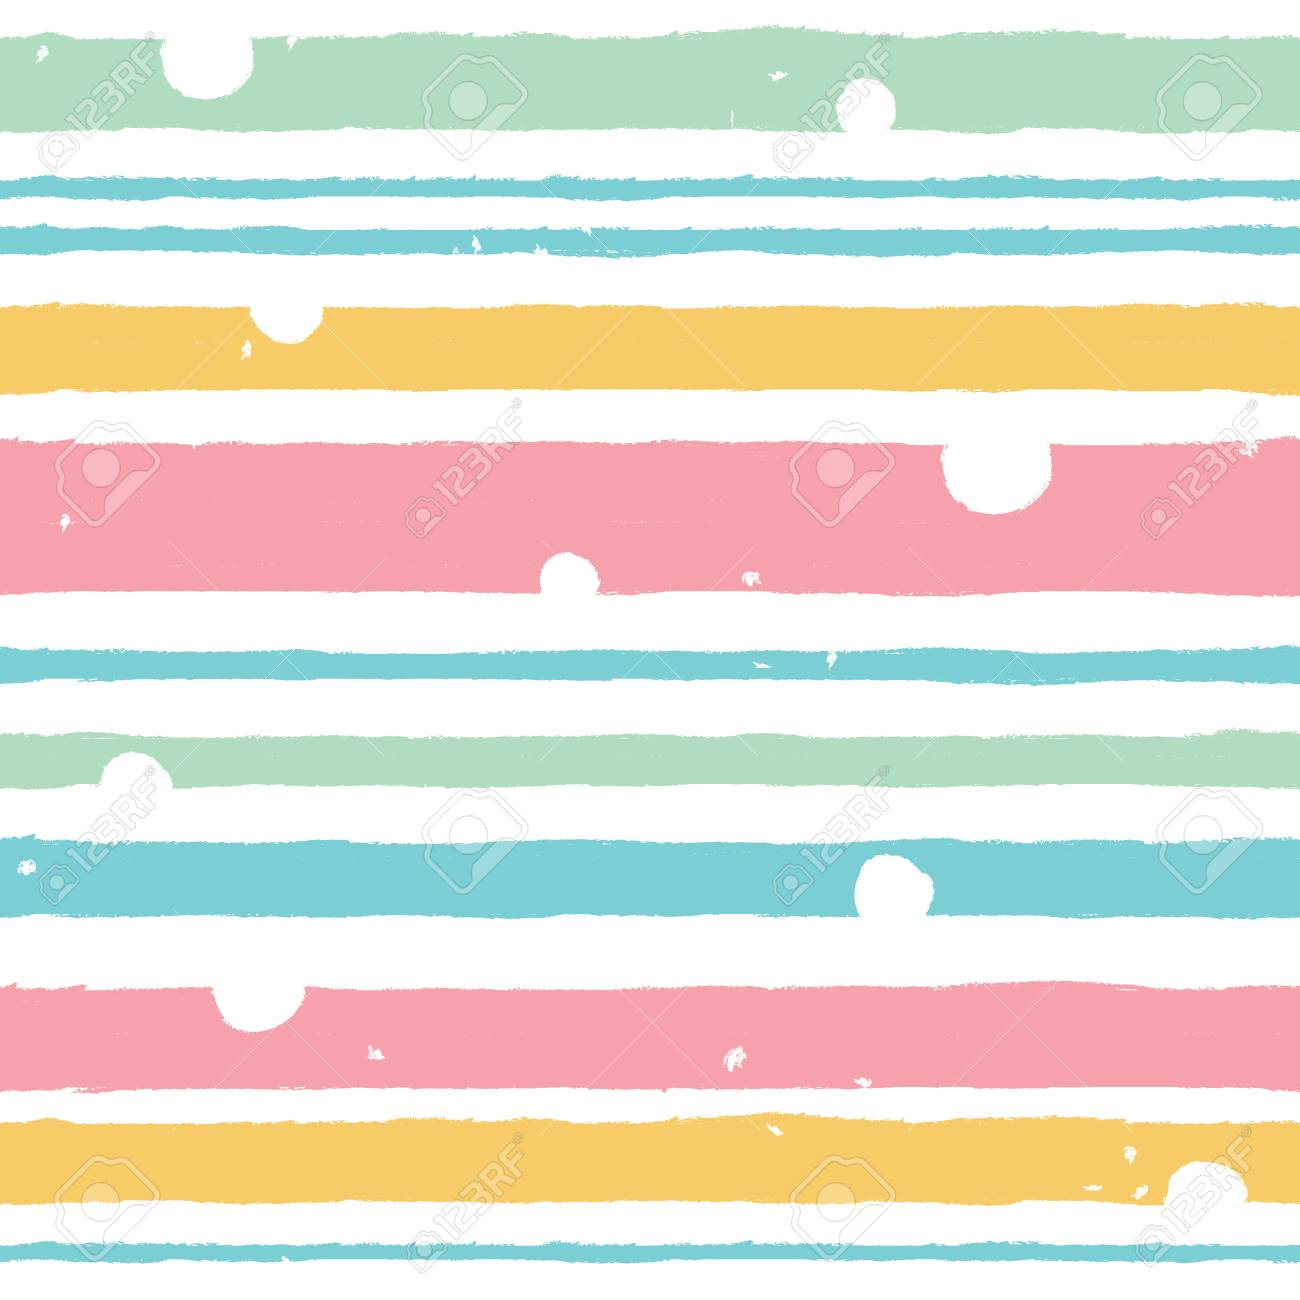 a simple seamless pattern with a horizontal strip vector background royalty free cliparts vectors and stock illustration image 90921386 a simple seamless pattern with a horizontal strip vector background